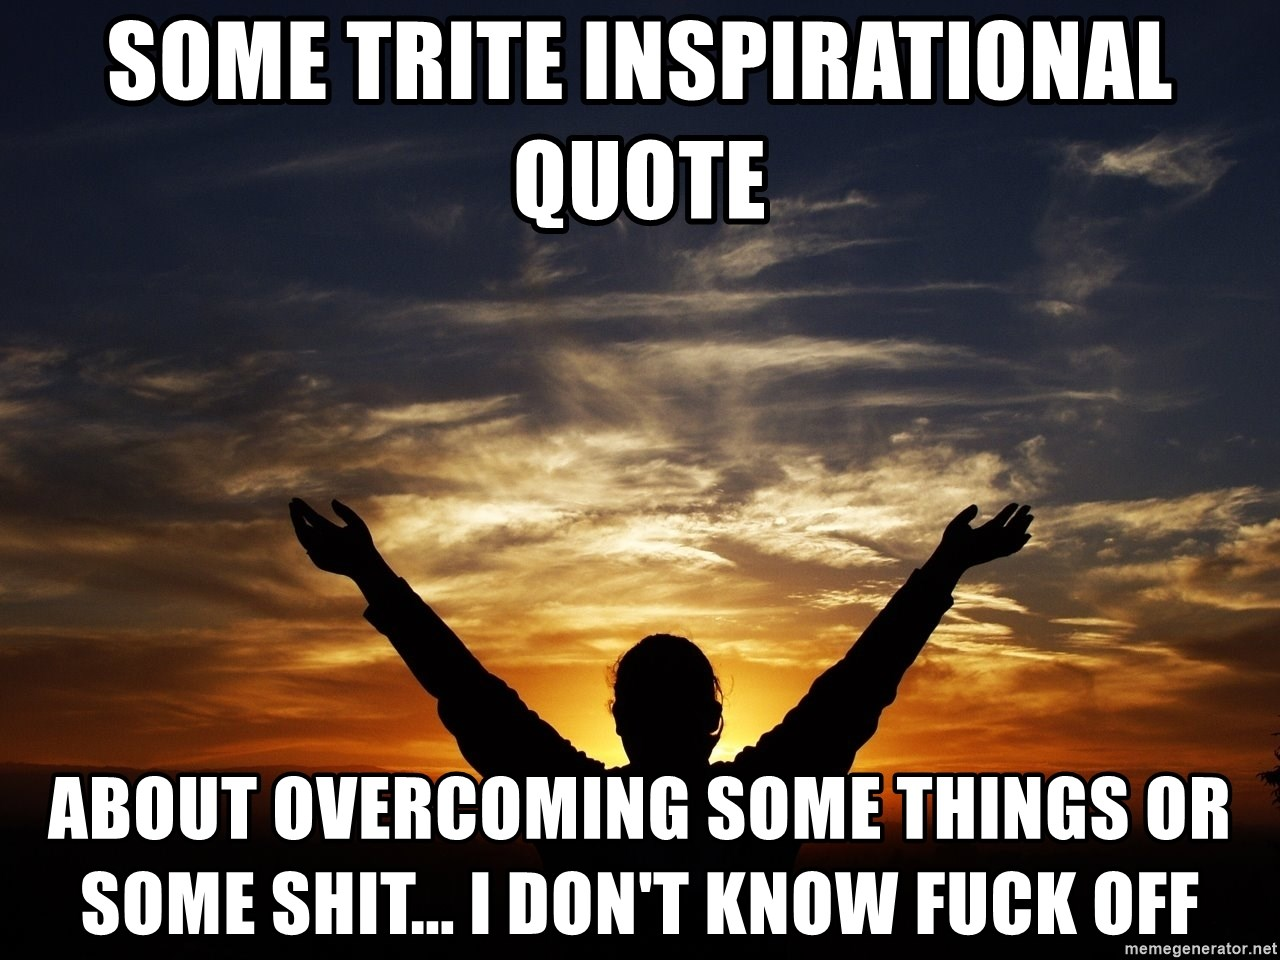 Inspirational Quote Generator Some Trite Inspirational Quote About Overcoming Some Things Or